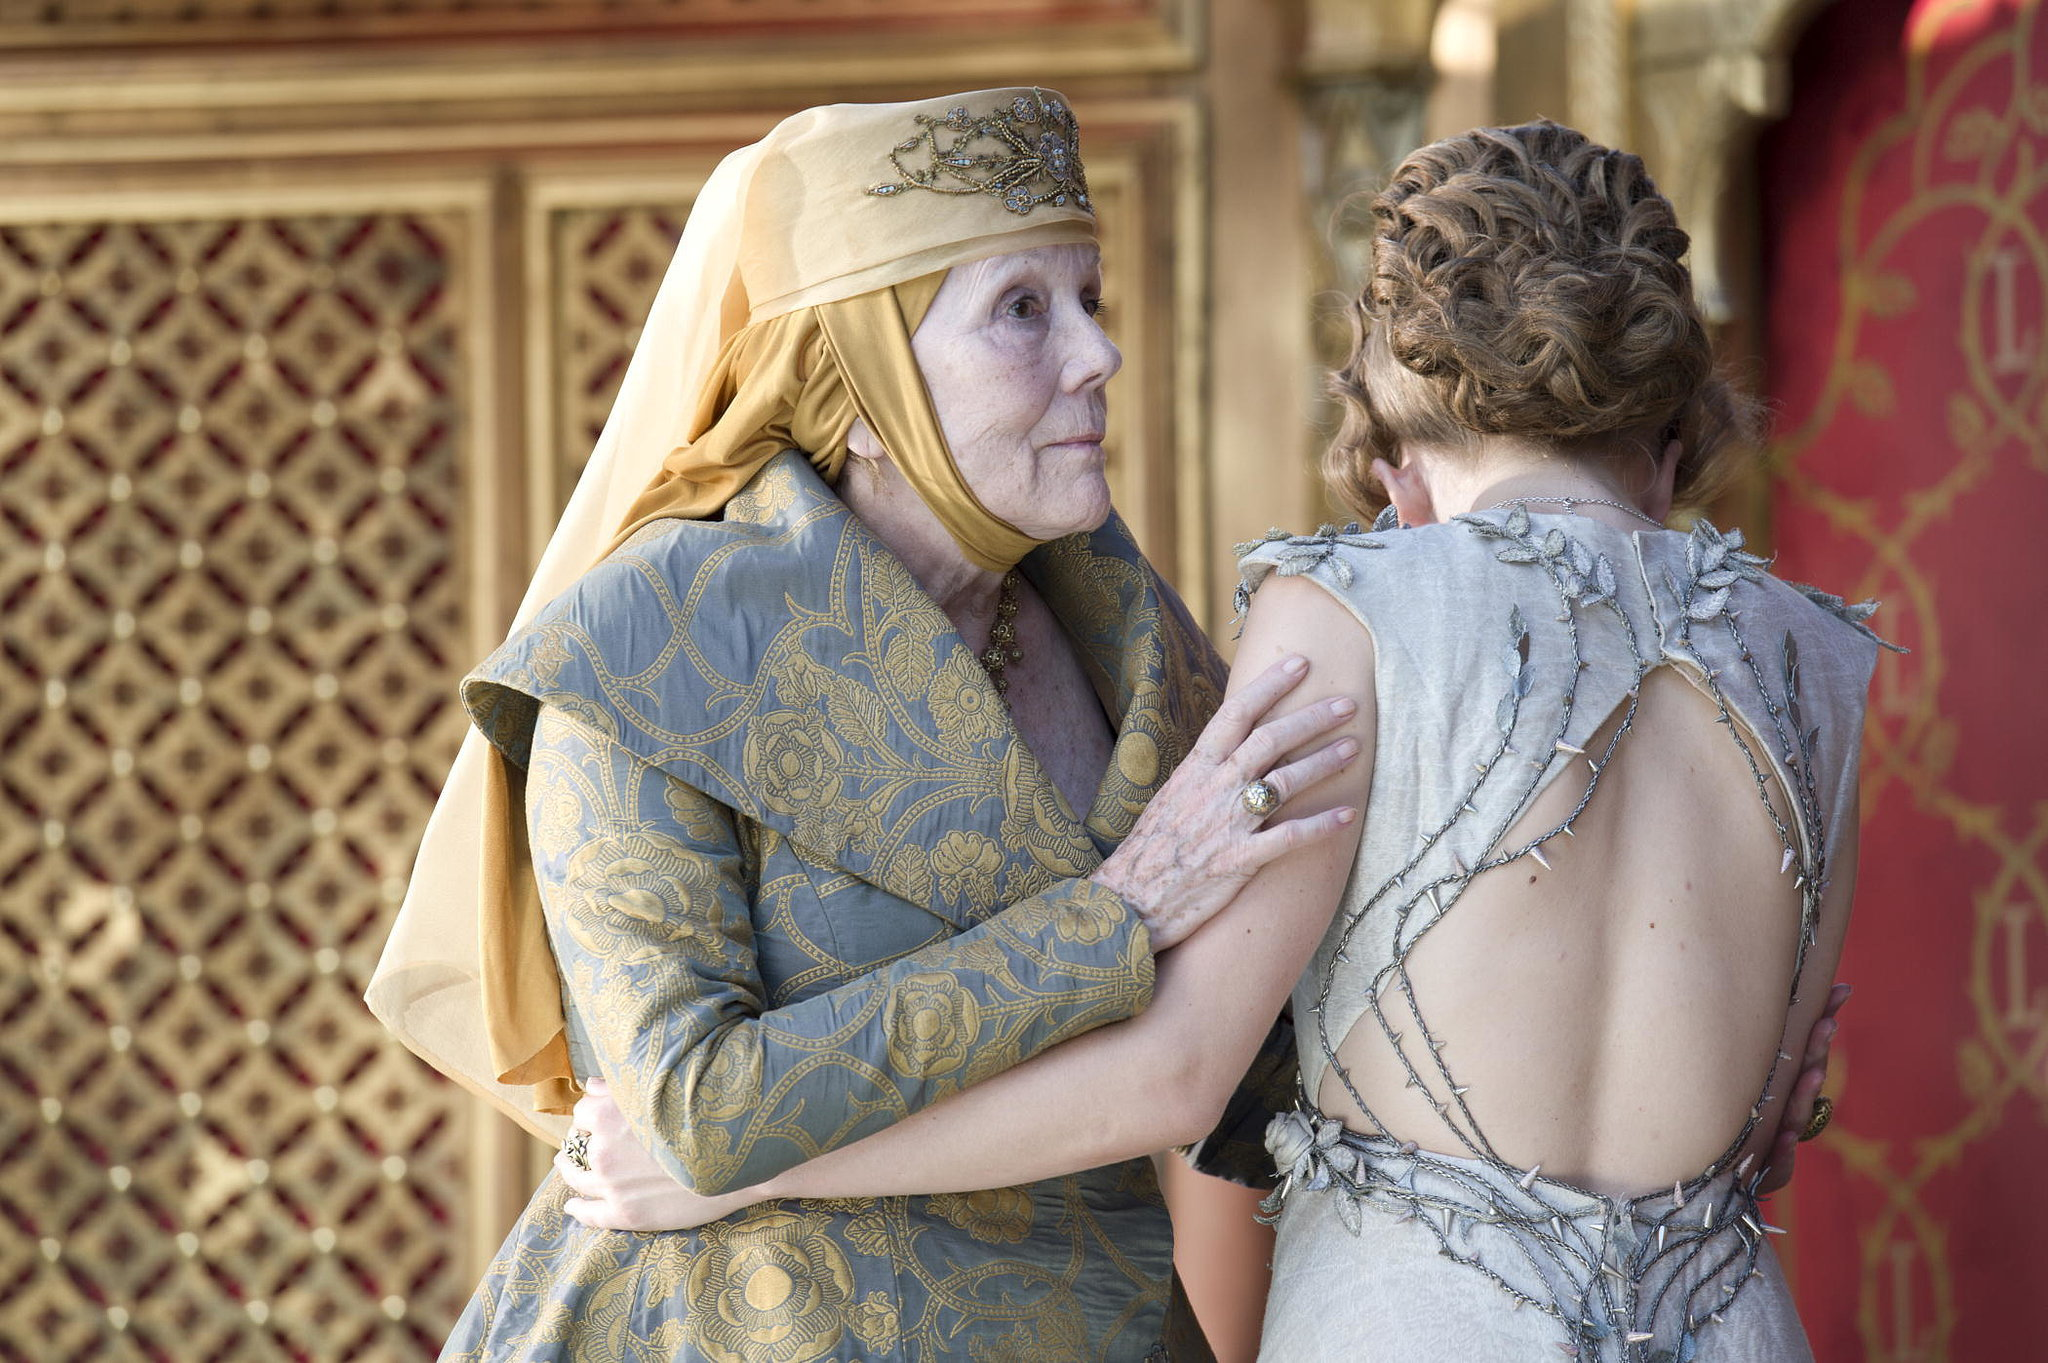 lady olenna tyrell killed joffrey on game of thrones